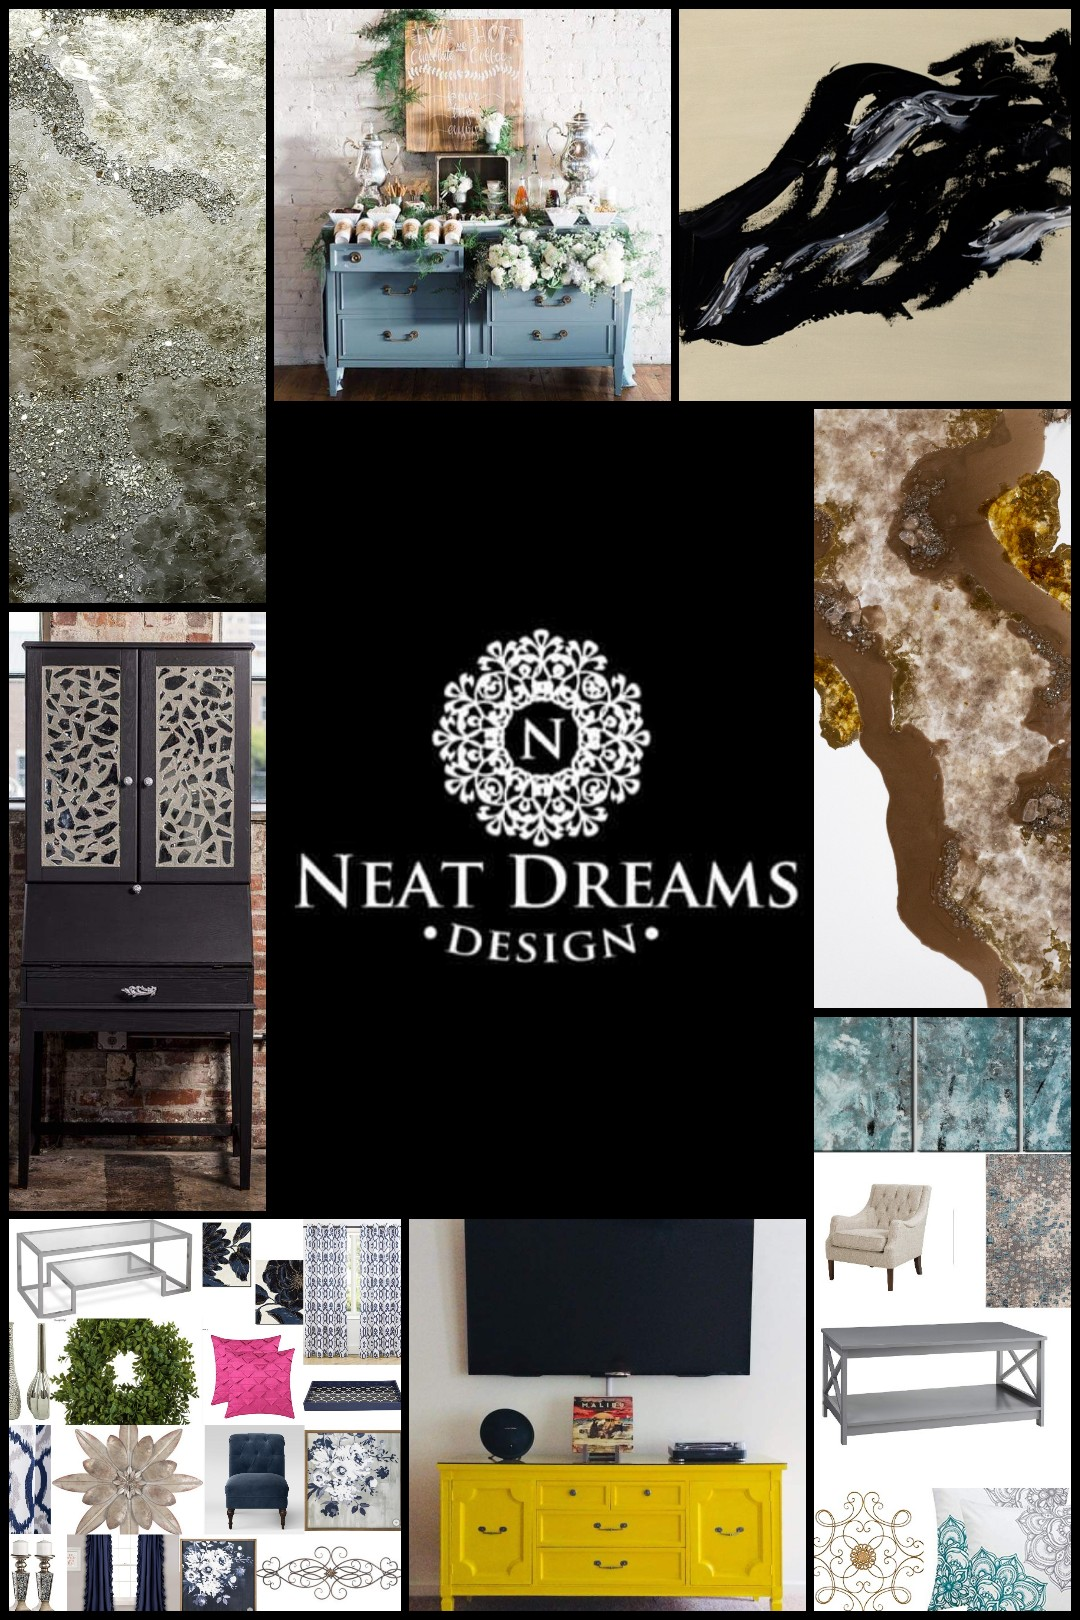 Neat Dreams Design